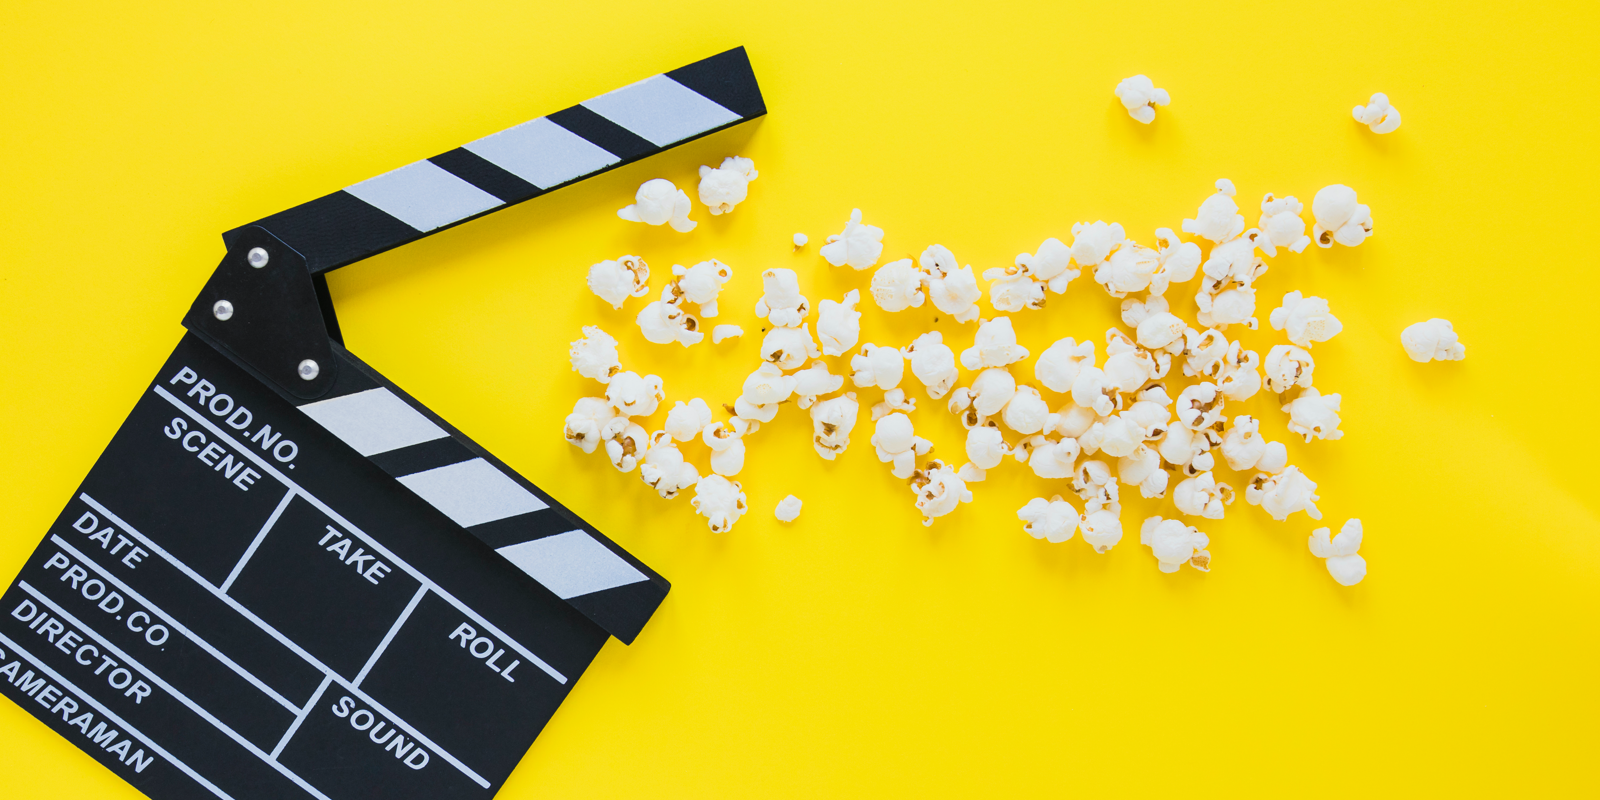 [VIDEO] 16 incredible video marketing stats